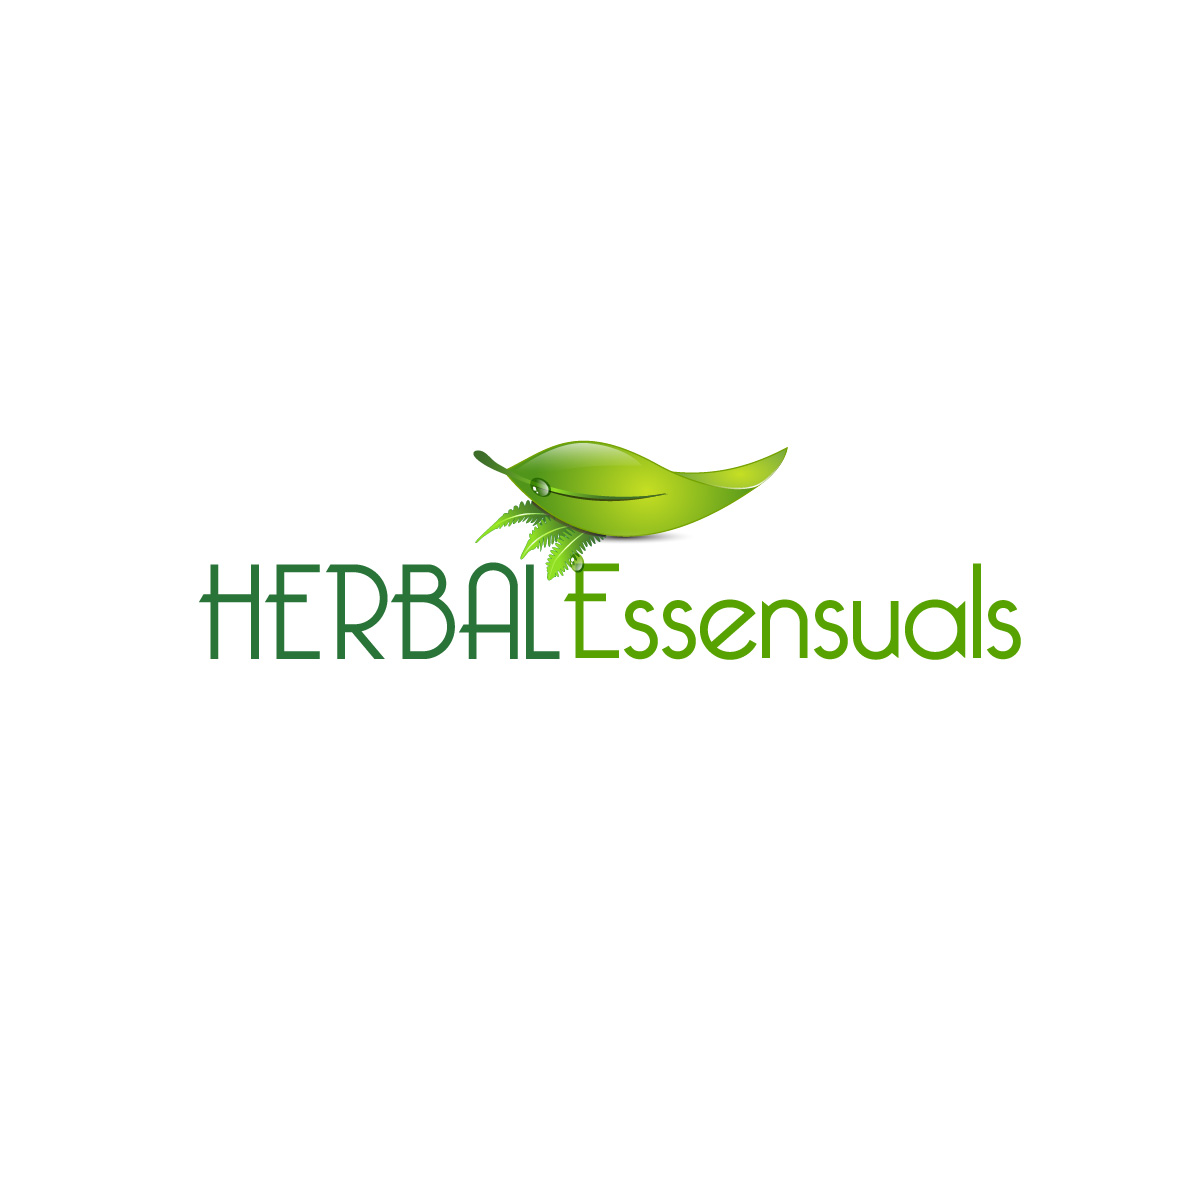 Logo Design by Robert Engi - Entry No. 161 in the Logo Design Contest Captivating Logo Design for Herbal Essensuals.